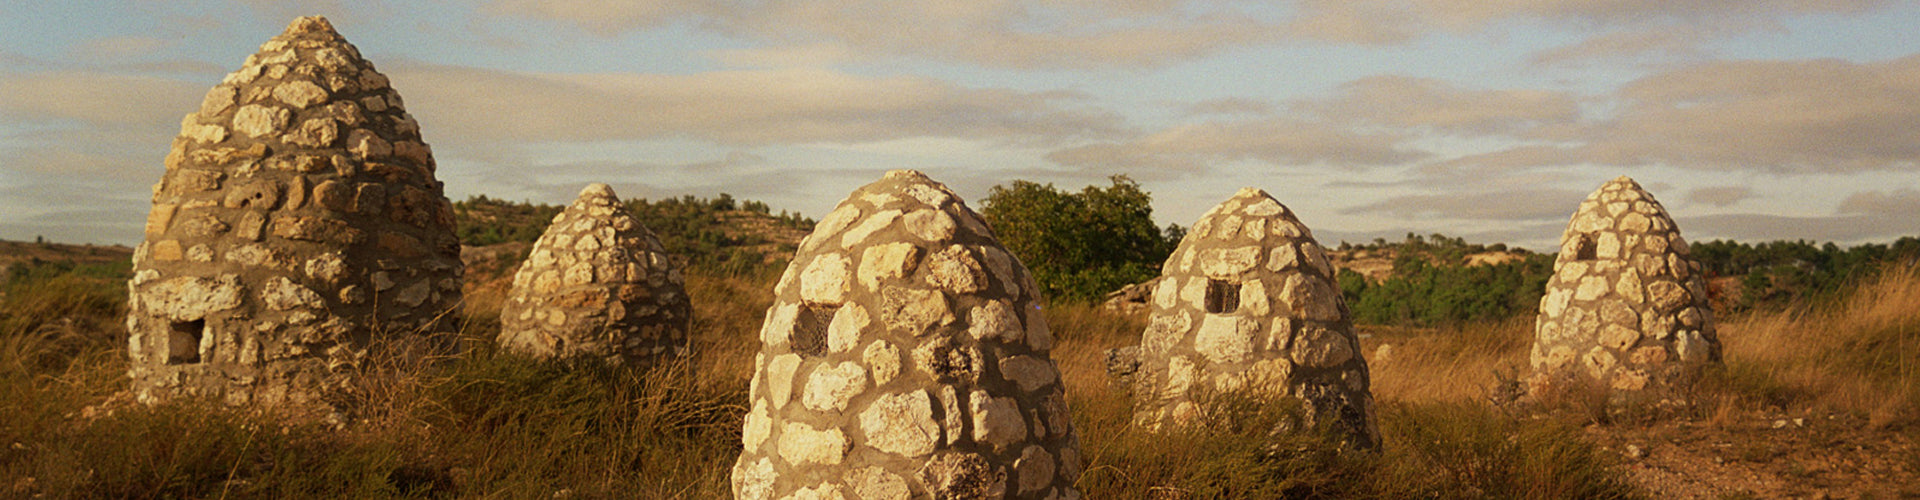 Traditional stone huts in Ribera del Duero Vineyards